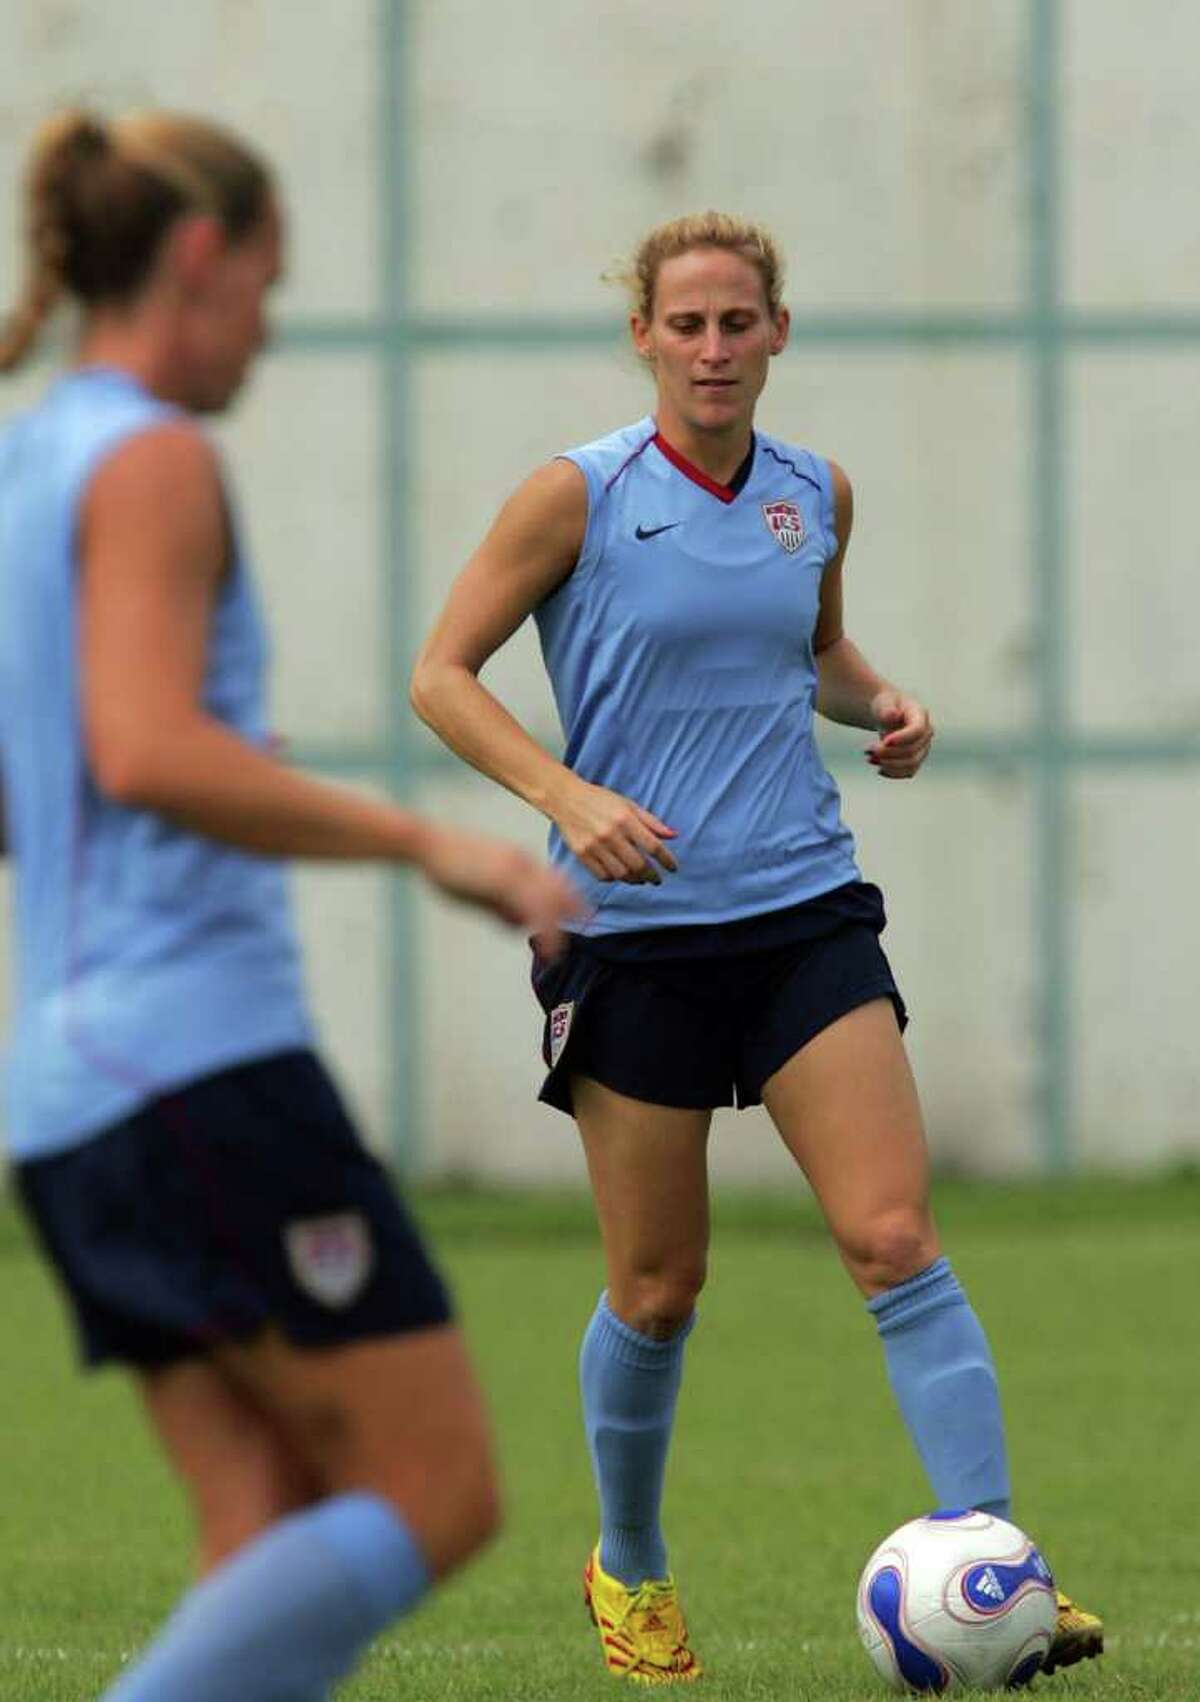 SHANGHAI, CHINA - SEPTEMBER 25: Midfielder Kristine Lilly of USA controls the ball during a United States of America training session for the FIFA Women's World Cup at Shanghai Senshua FC on September 25, 2007 in Shanghai, China. (Photo by Ronald Martinez/Getty Images) *** Local Caption *** Kristine Lilly